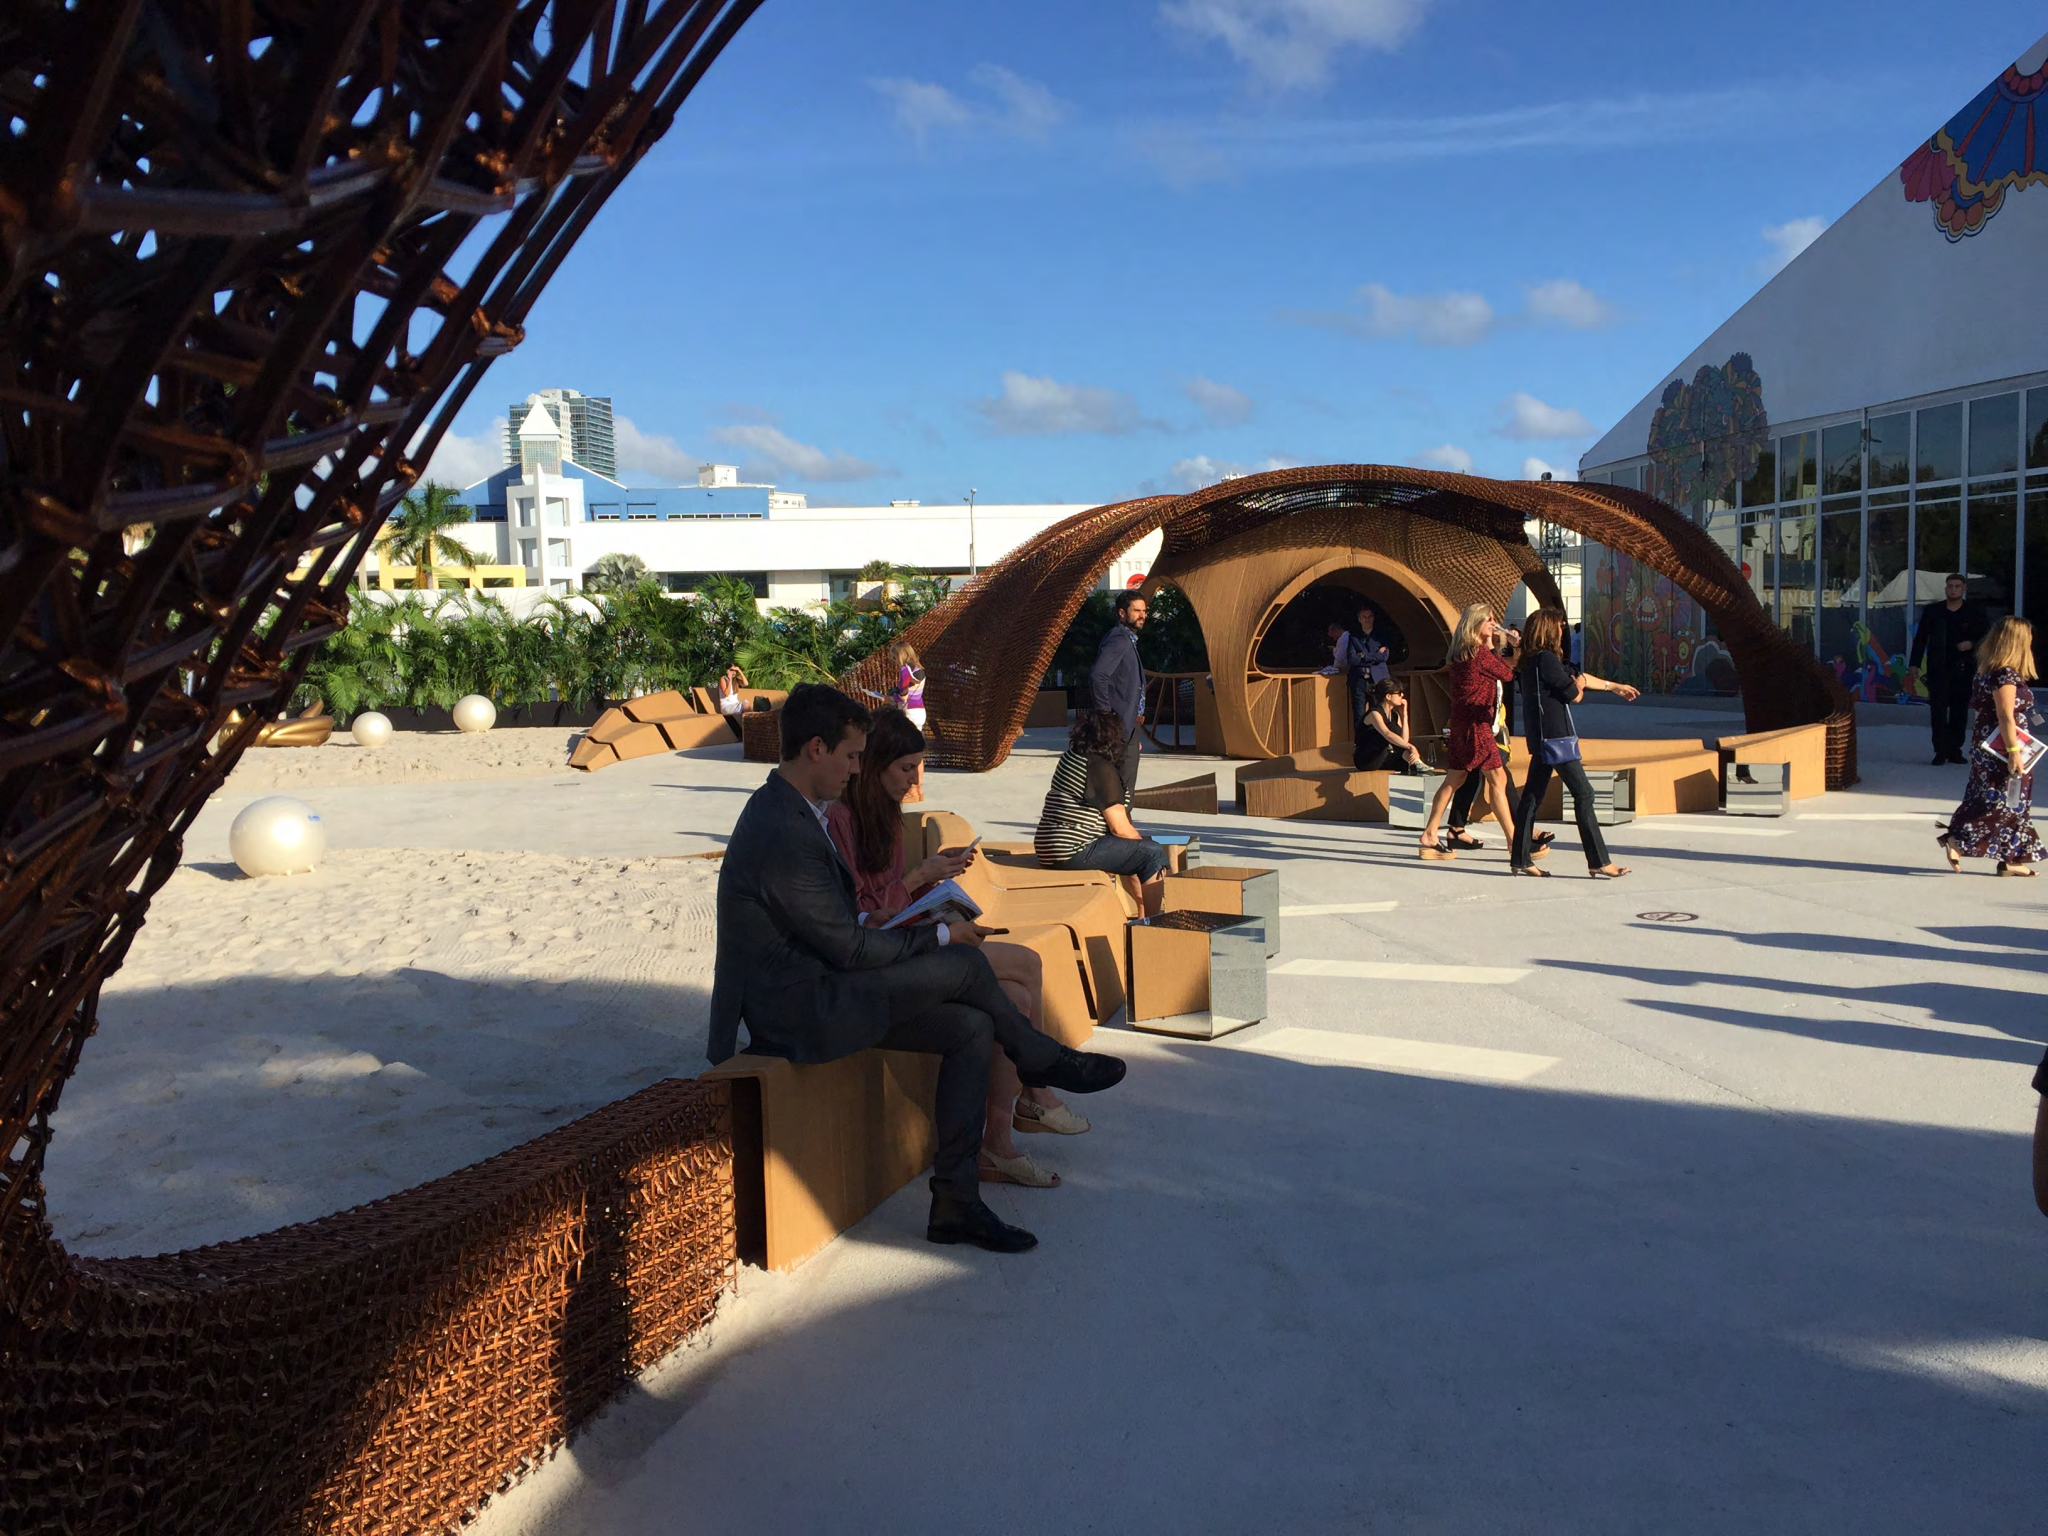 People sit on the 3D printed seats which form part of the Flotsam and Jetsam piece. Photo via Branch Technology.